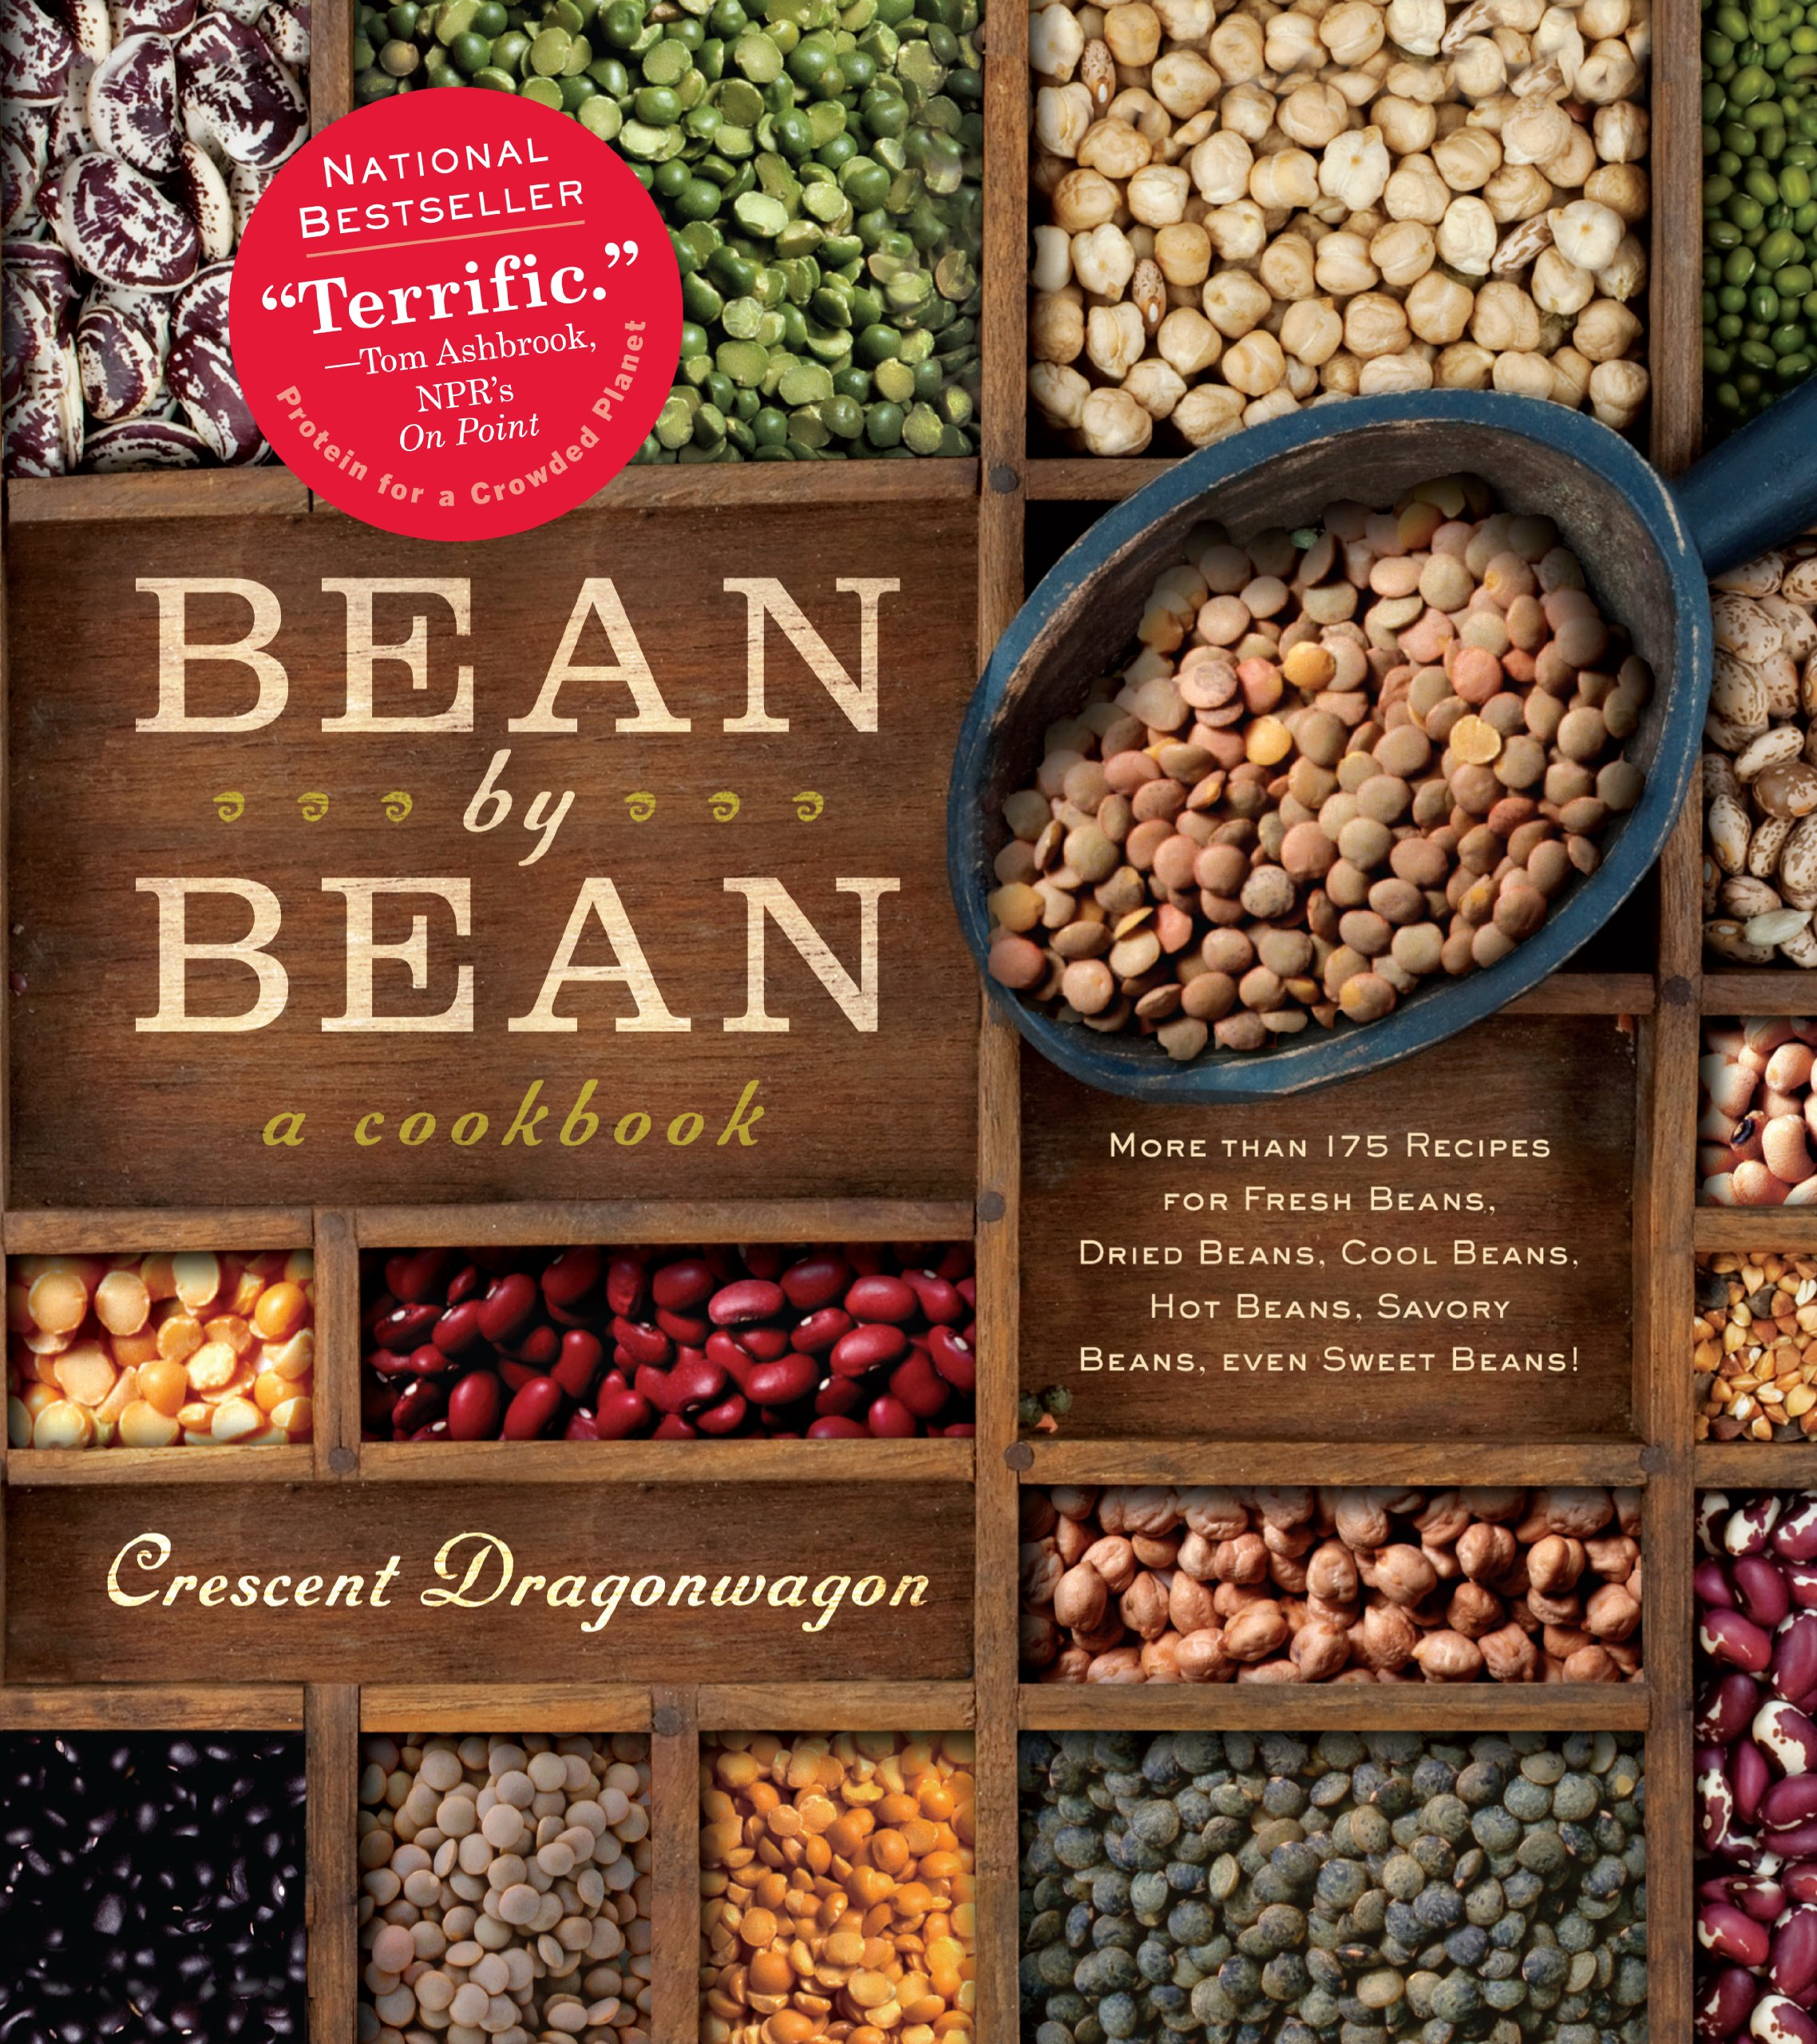 Bean by bean a cookbook more than 175 recipes for fresh beans bean by bean a cookbook more than 175 recipes for fresh beans dried beans cool beans hot beans savory beans even sweet beans forumfinder Images